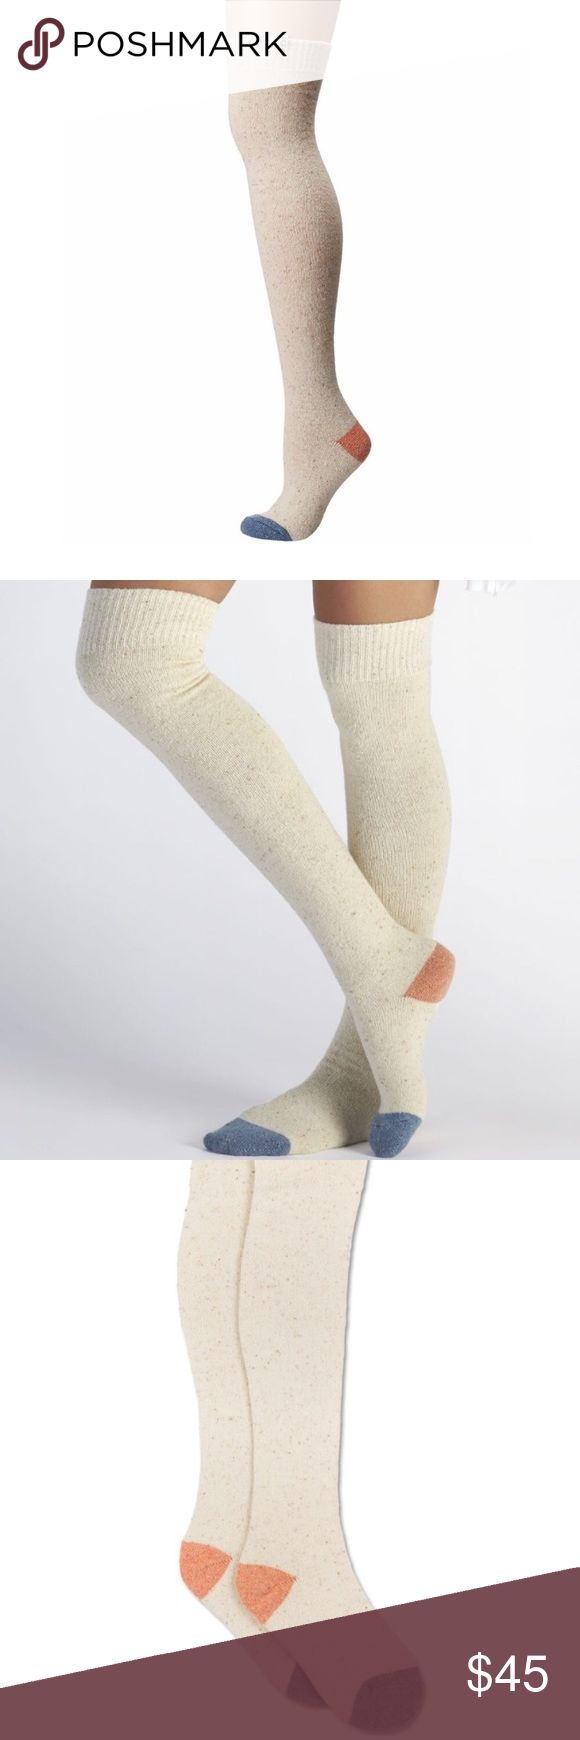 """UGG Socks UGG wool blend over the knee sock.  NWT.  Makes for a great gift.  These comfy over-the-knee socks are a must-have for your winter wardrobe 22"""" over-the-knee height Contrast color toe and heel Wool blend One pair per package Fits Women's shoe sizes 5-10 UGG Accessories Hosiery & Socks"""